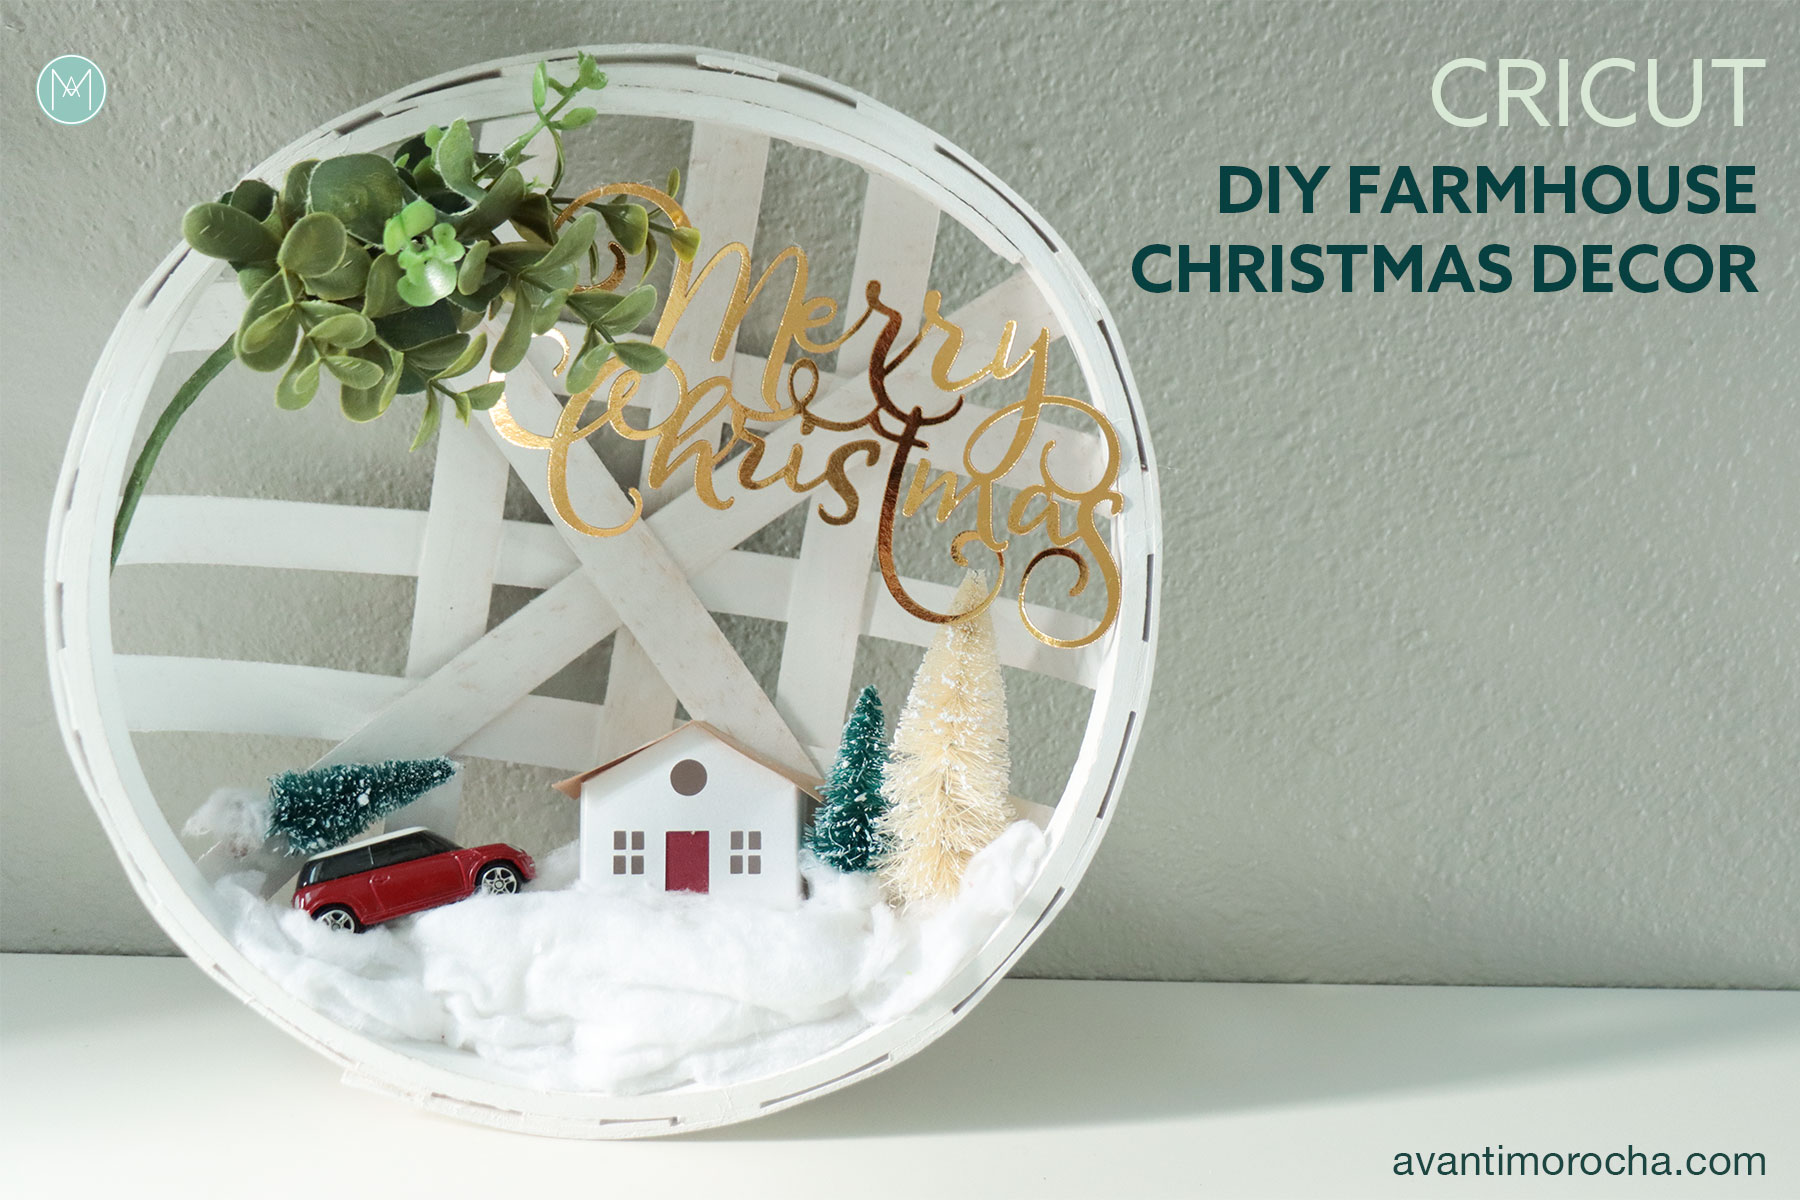 Cricut - Farmhouse Christmas Decor